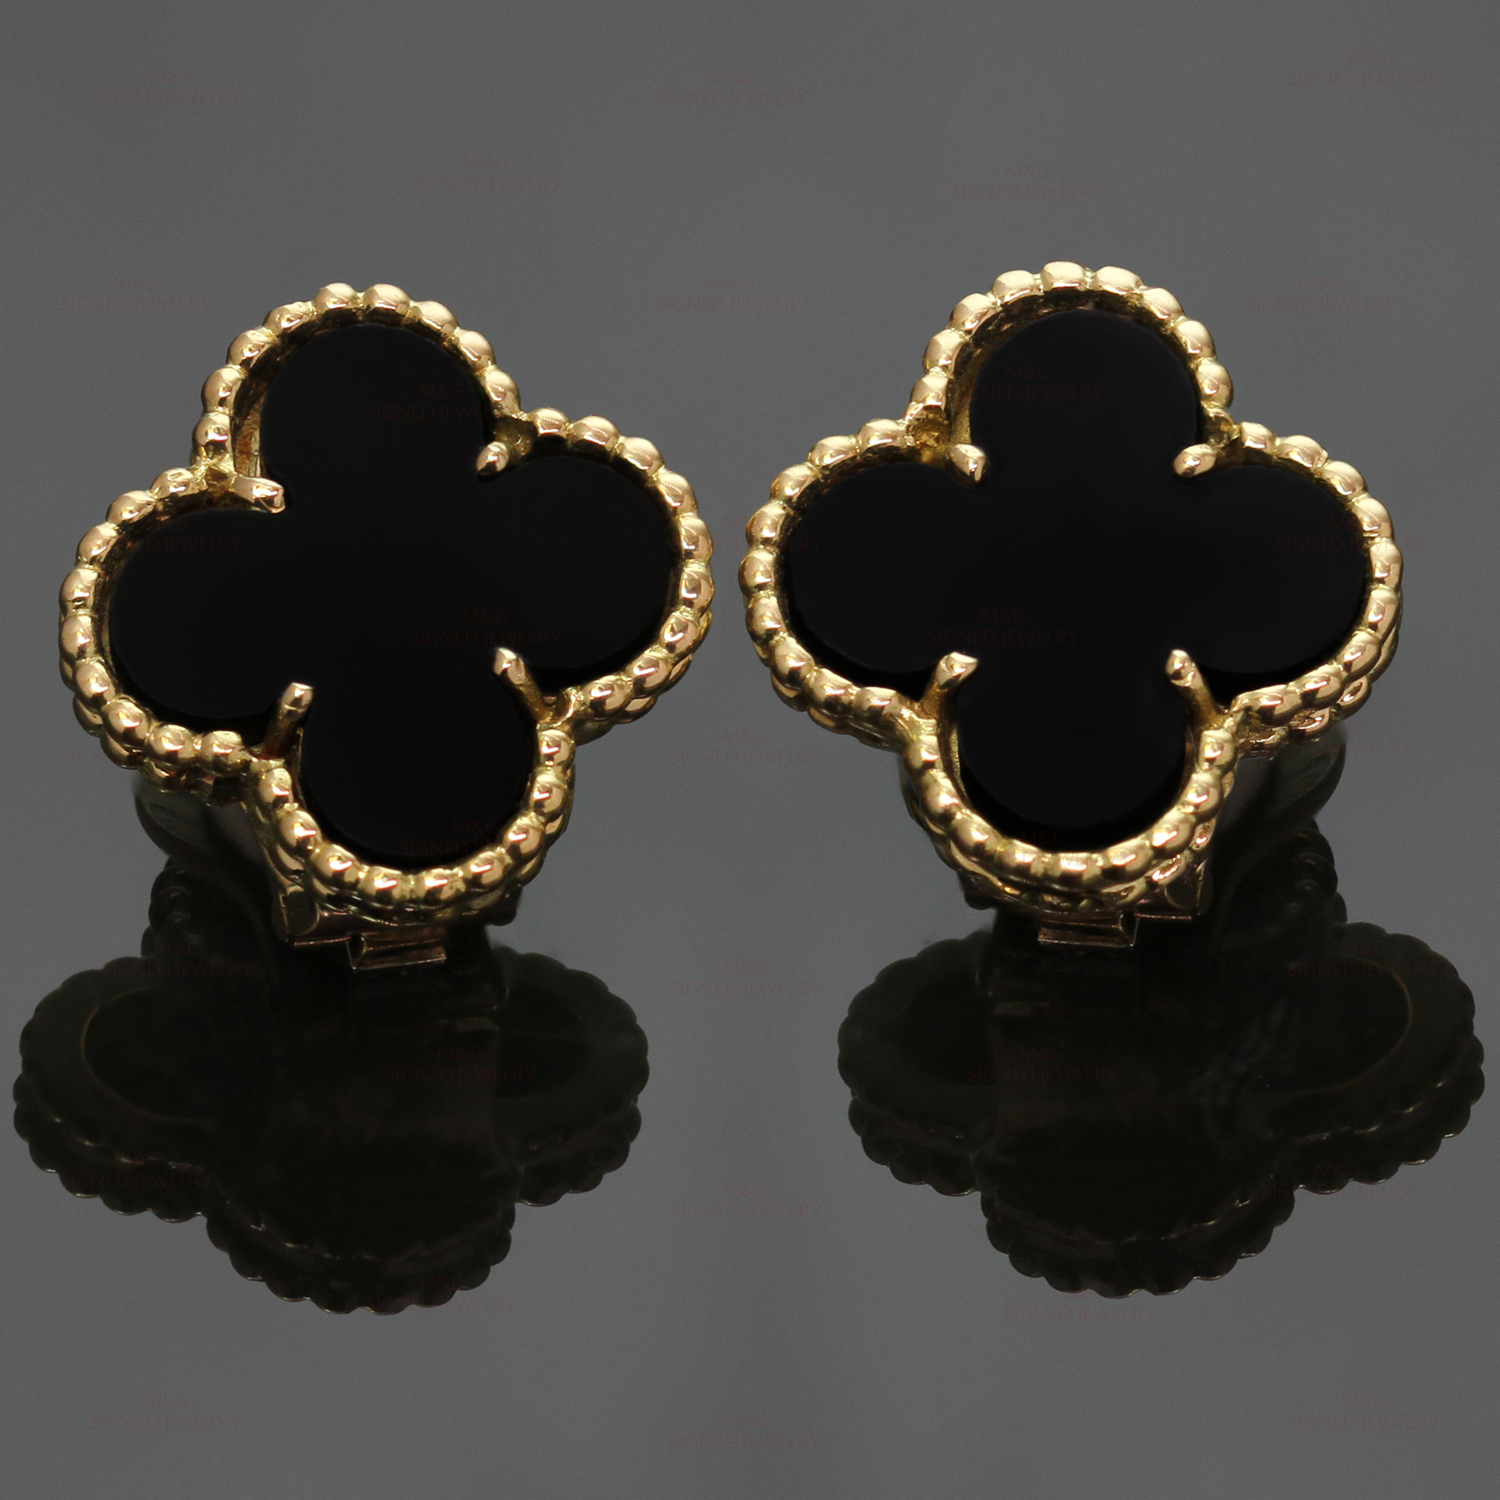 de9a96d29702 VAN CLEEF   ARPELS Vintage Alhambra Black Onyx Yellow Gold Earrings